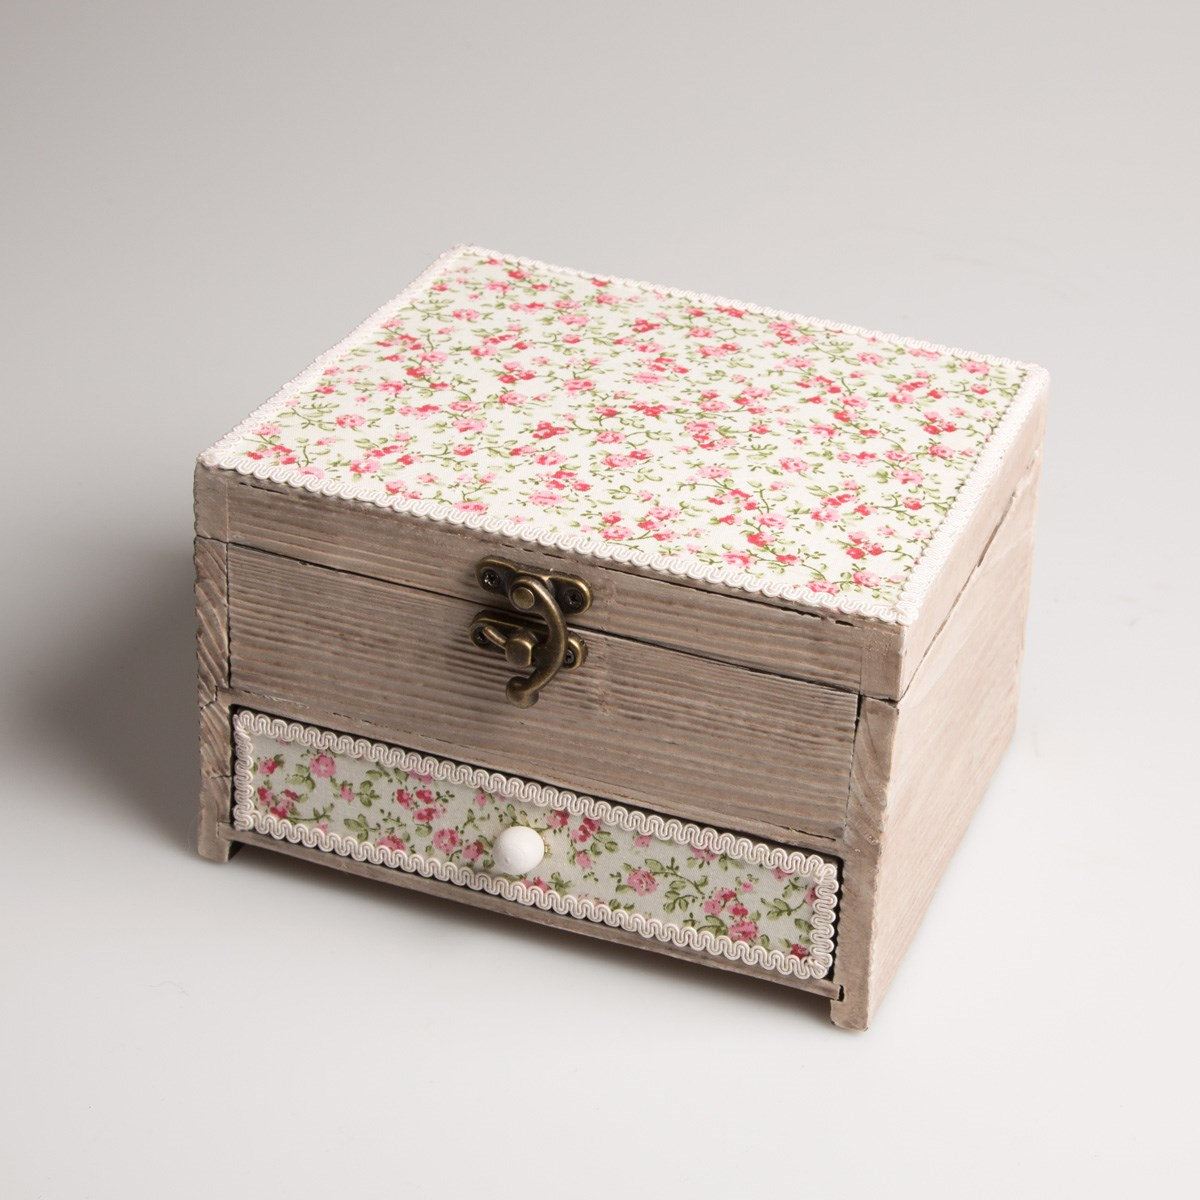 craft boxes for sale, sweet floral wooden boxes for carfts storage or jewellery